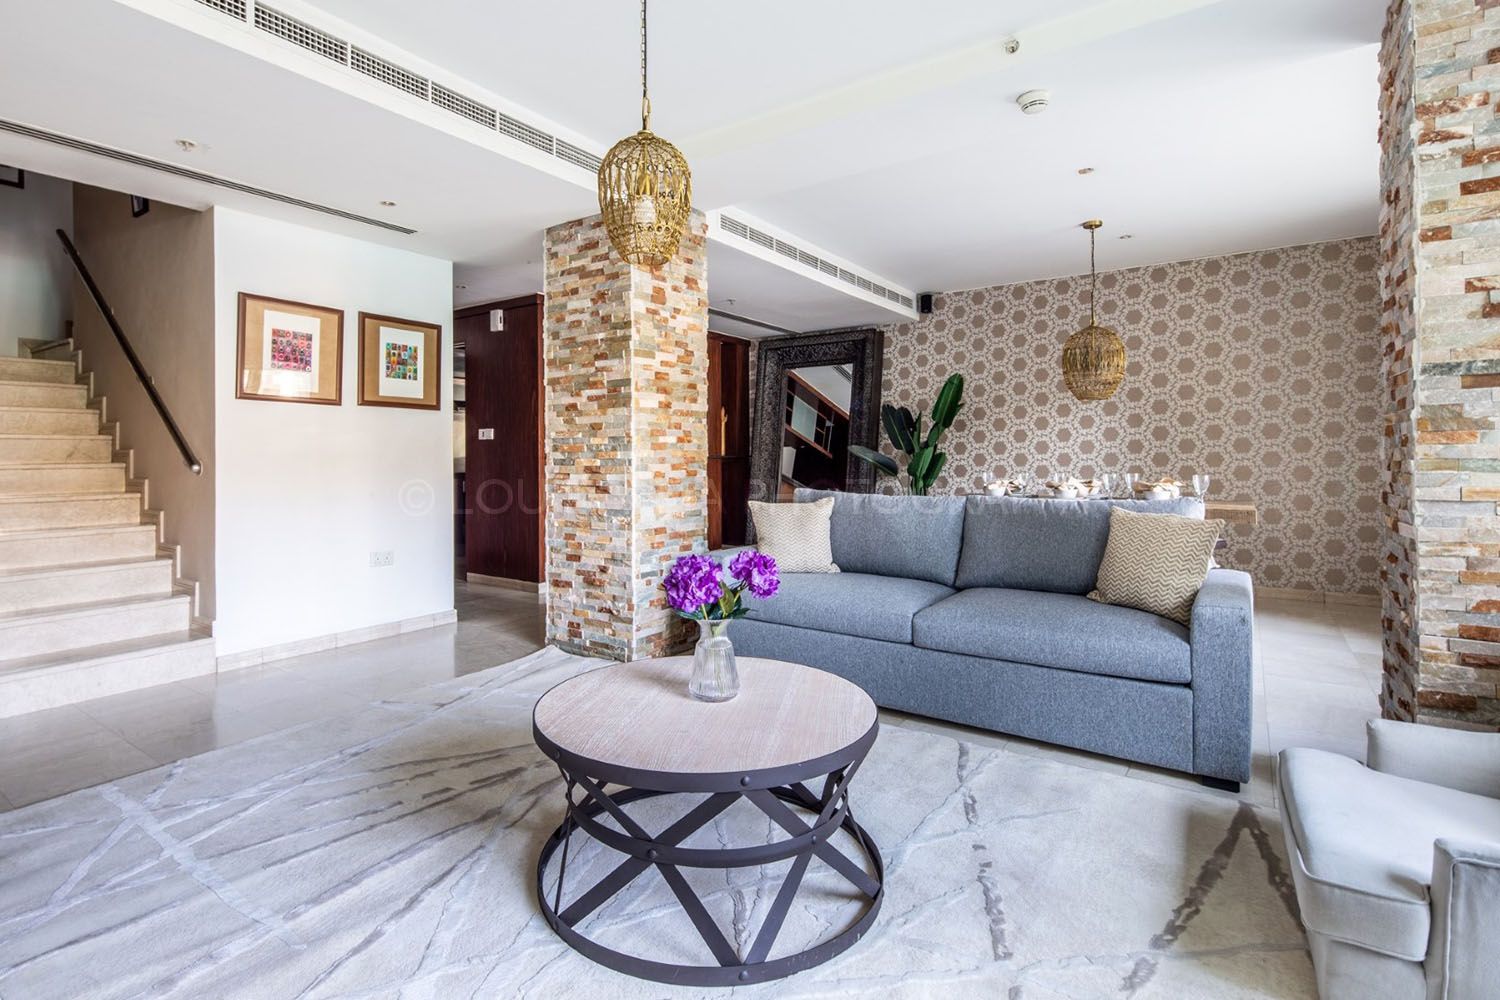 Real Estate Photography - Classy Apartment in Downtown, Dubai